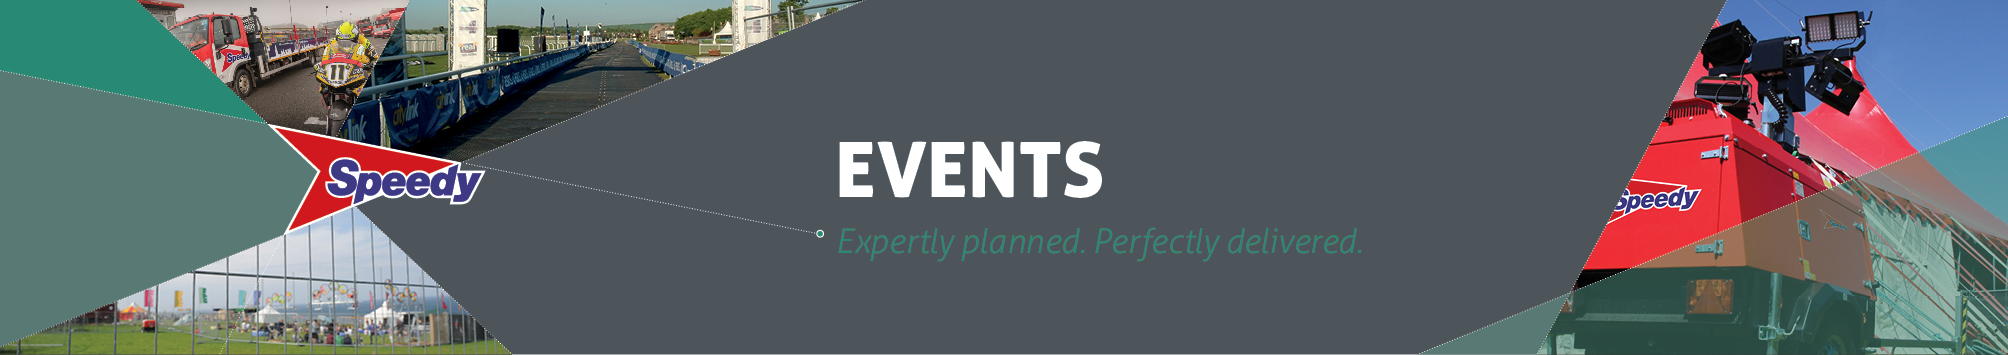 Events Landing Page Header.jpg